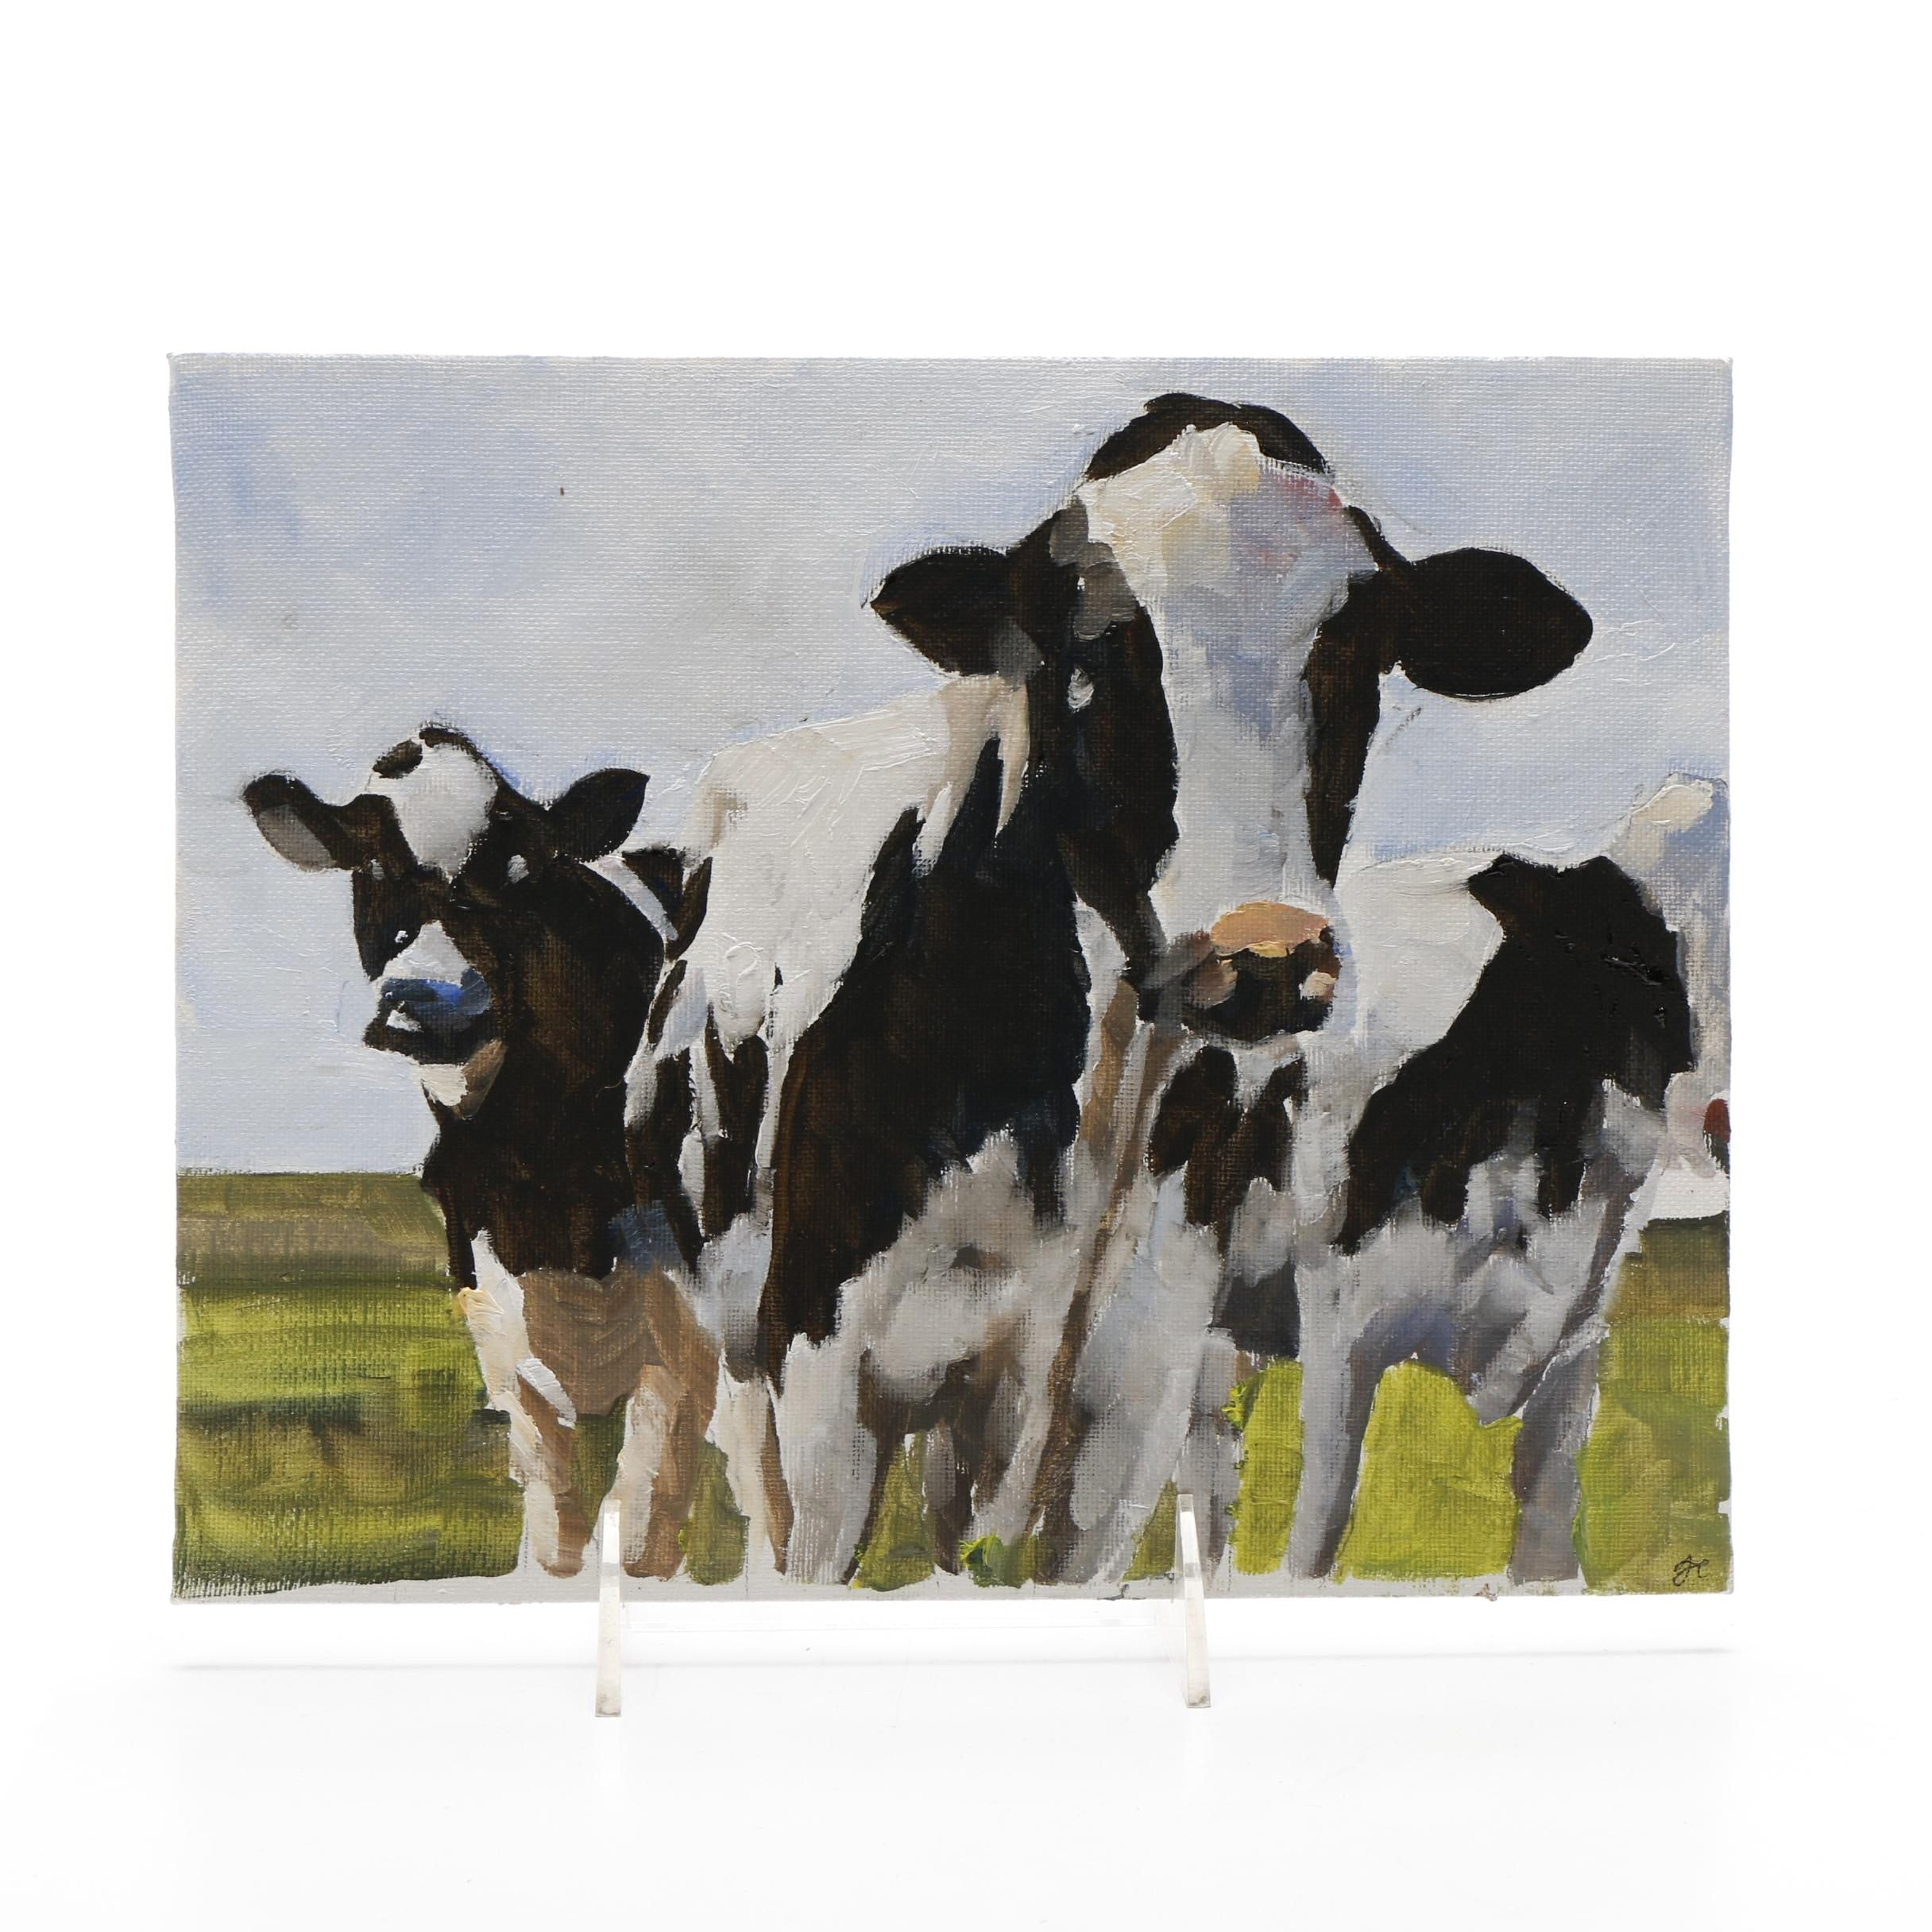 James Coates Oil Painting of Holstein Cattle